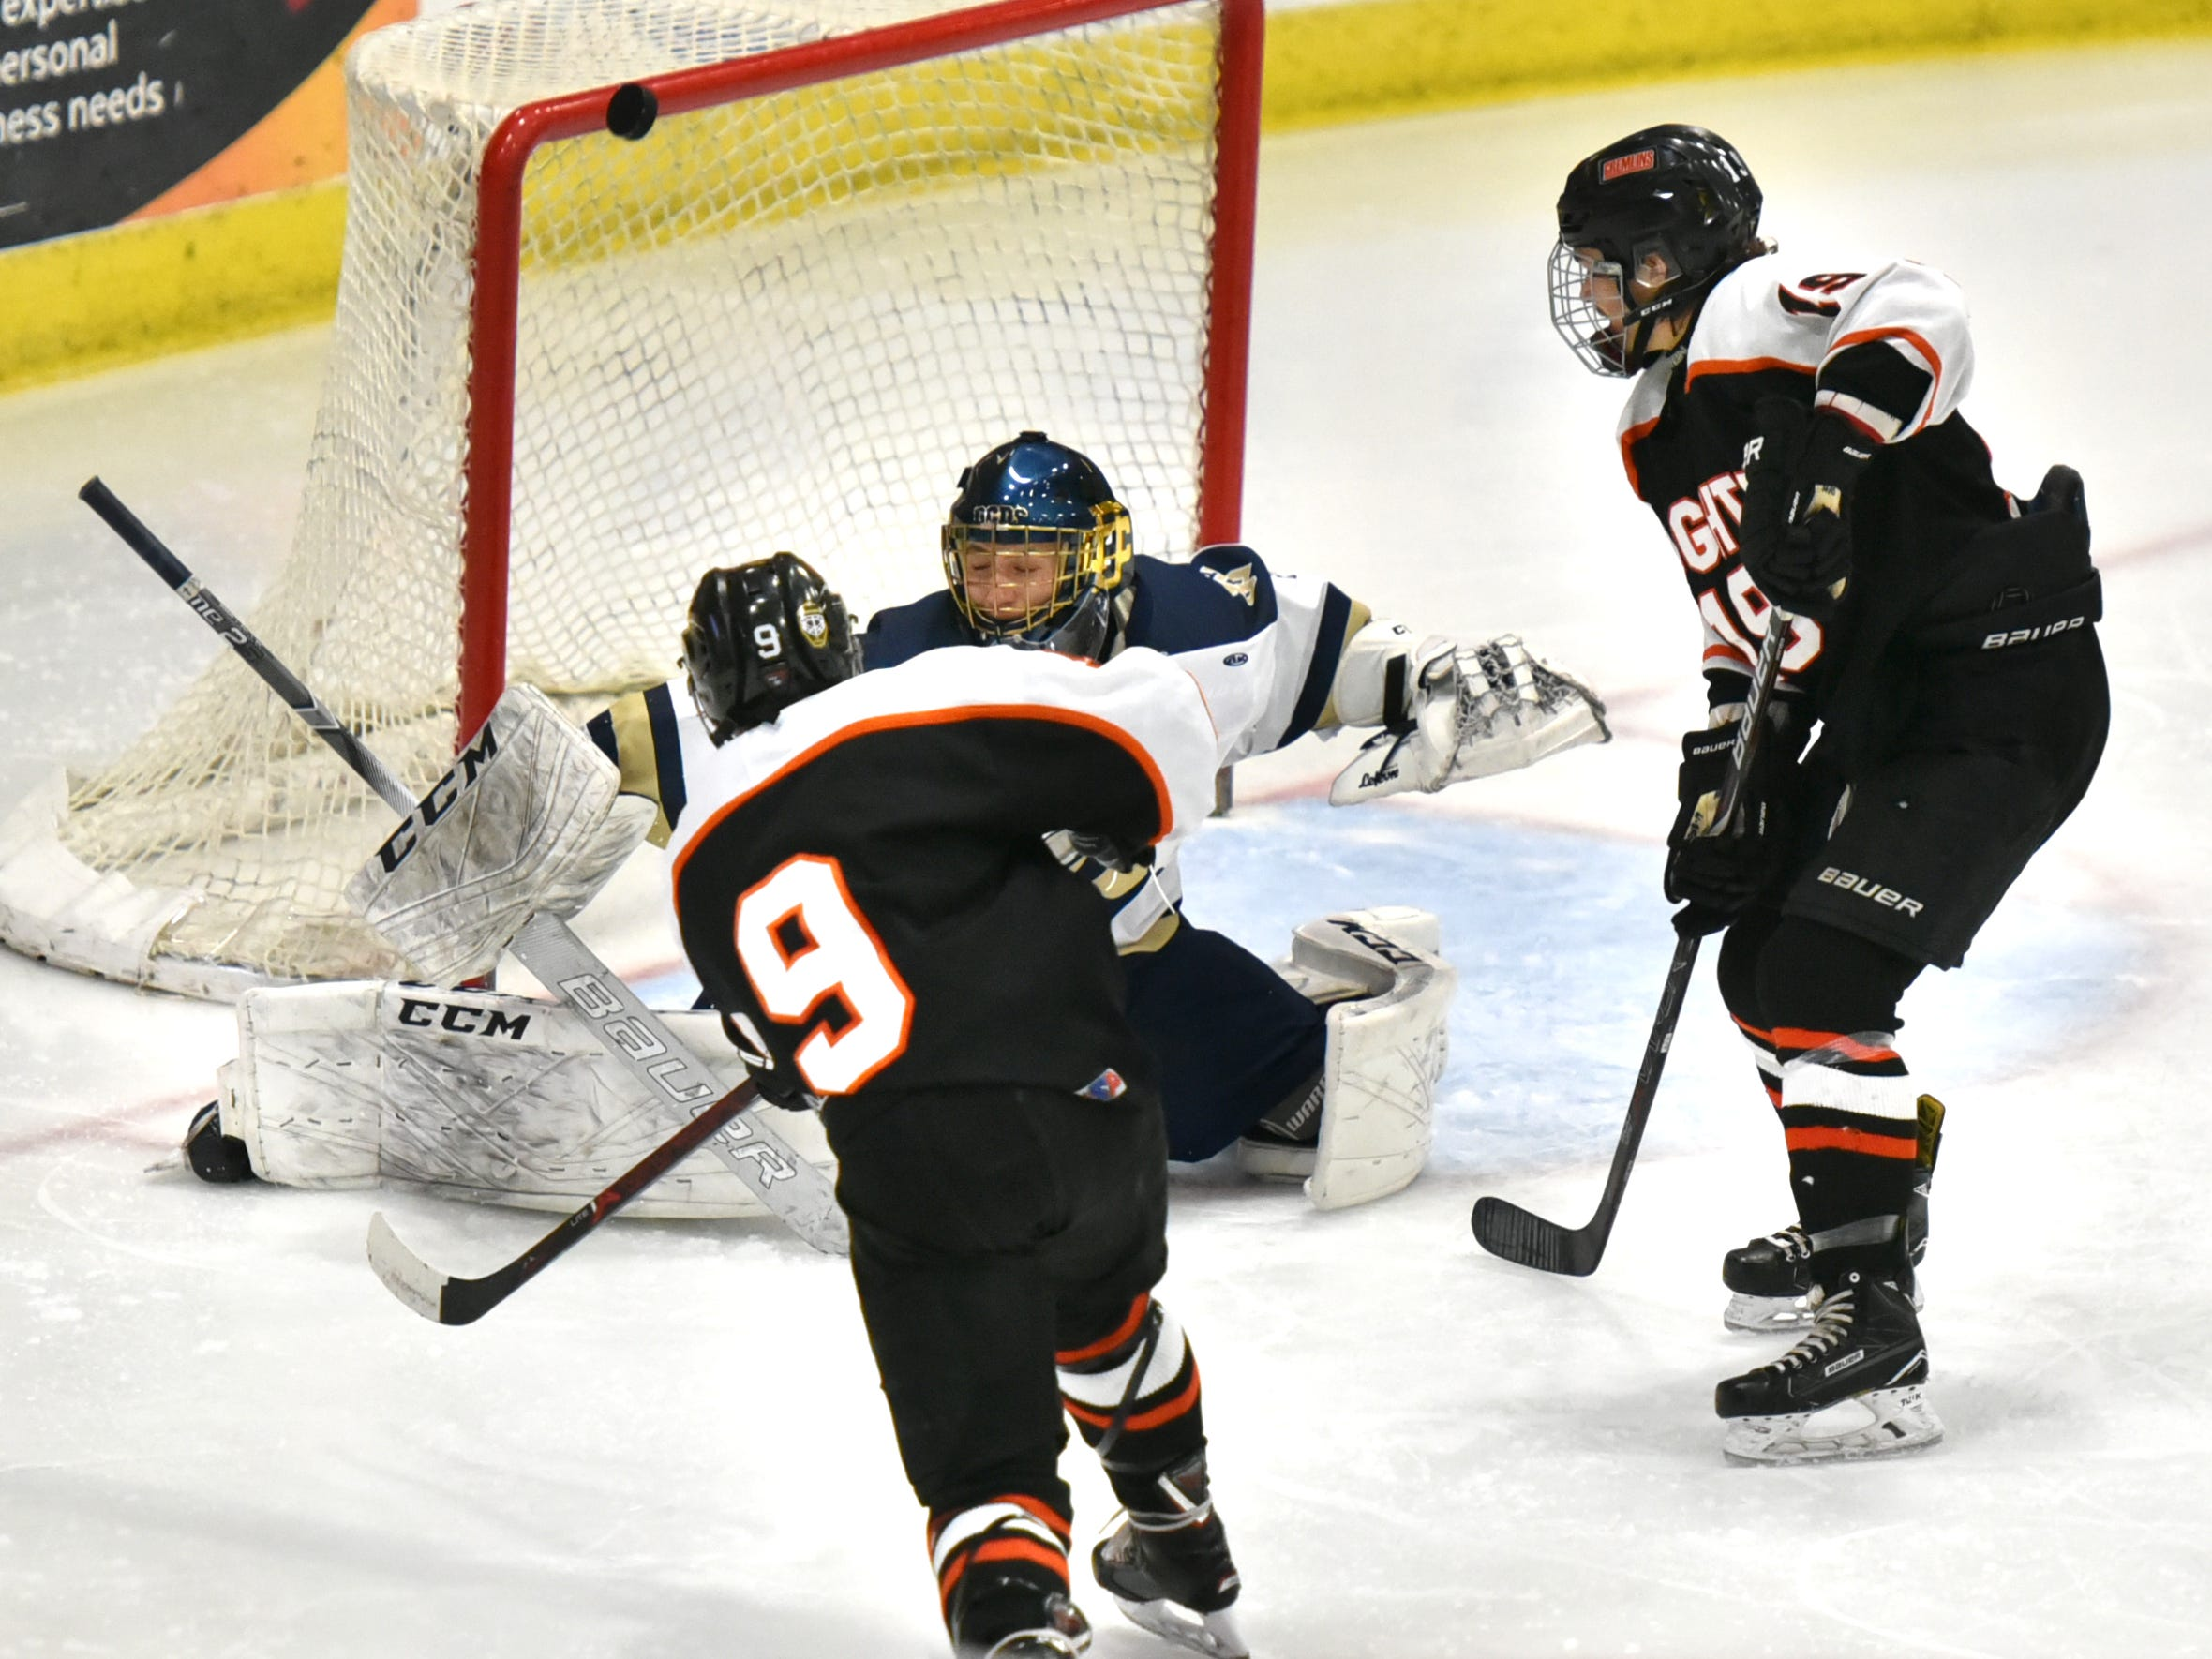 With two Houghton players bearing down on him including Justin Norkol, right, DCD goalie Sam Evola makes a pad save - and the puck heads up over the cross bar.